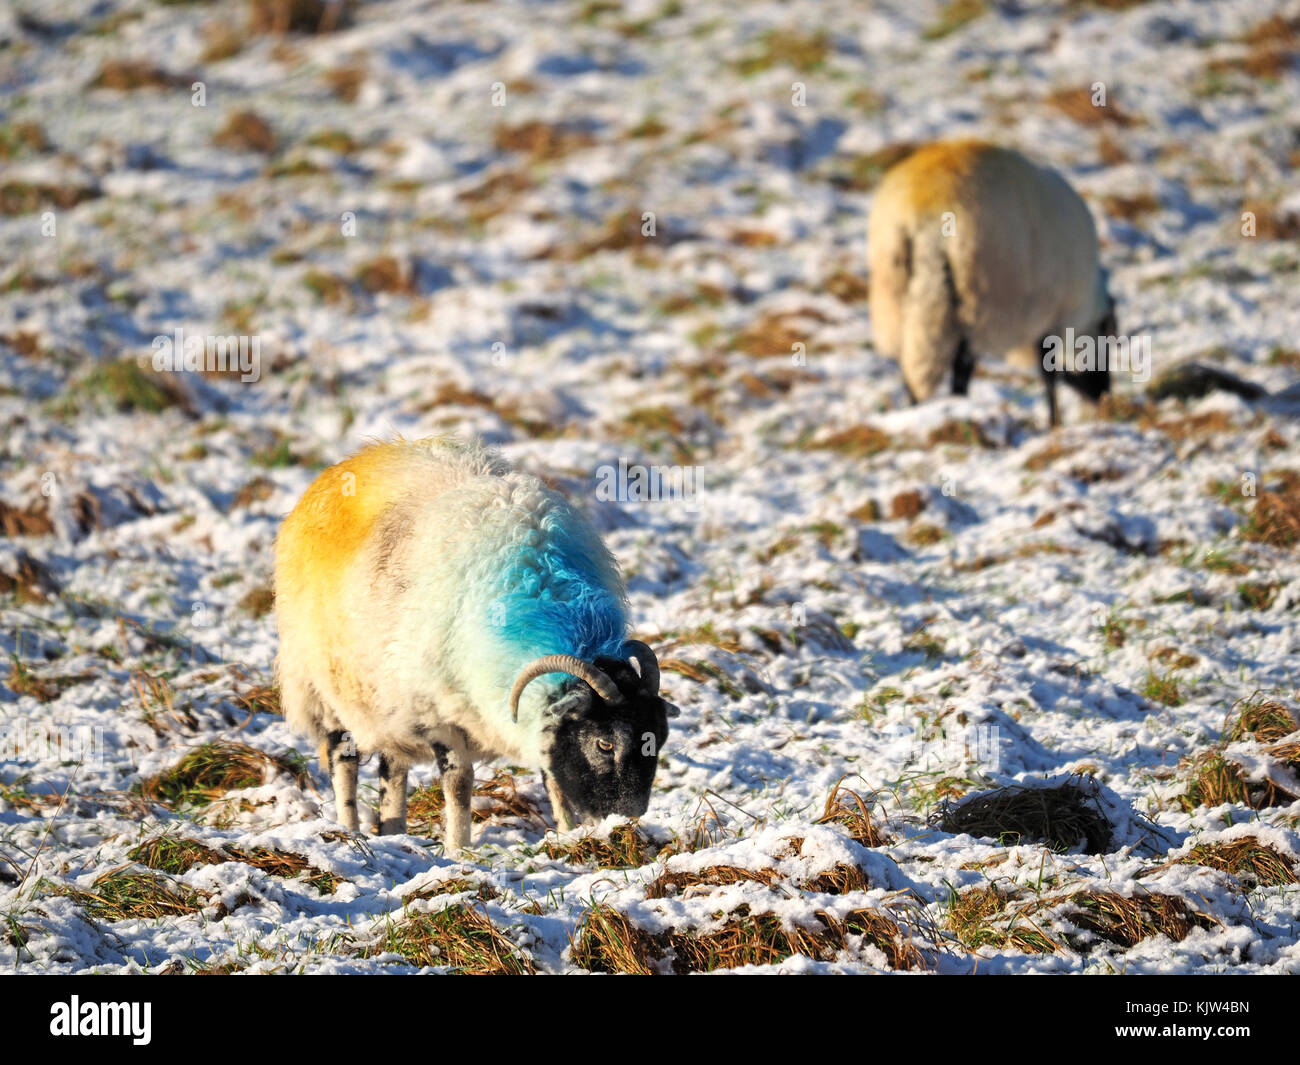 Cumbria, UK. 25th November, 2017. sheep standing in snowy field as winter starts early in Cumbria Credit: Steve - Stock Image